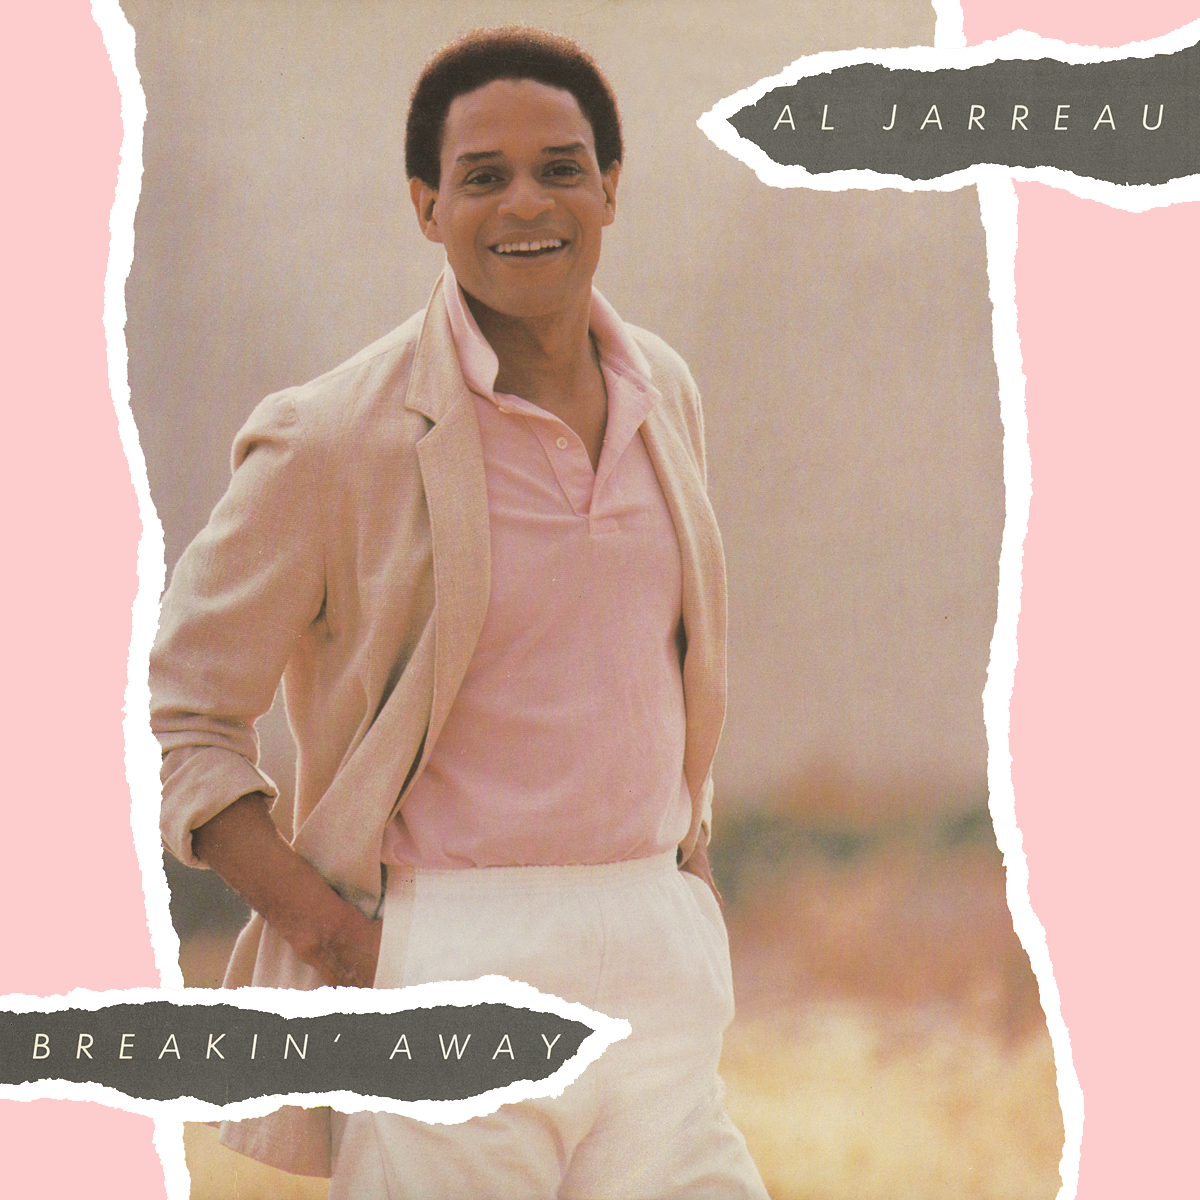 Al Jarreau – Breakin' Away | Vinyl Album Covers.com